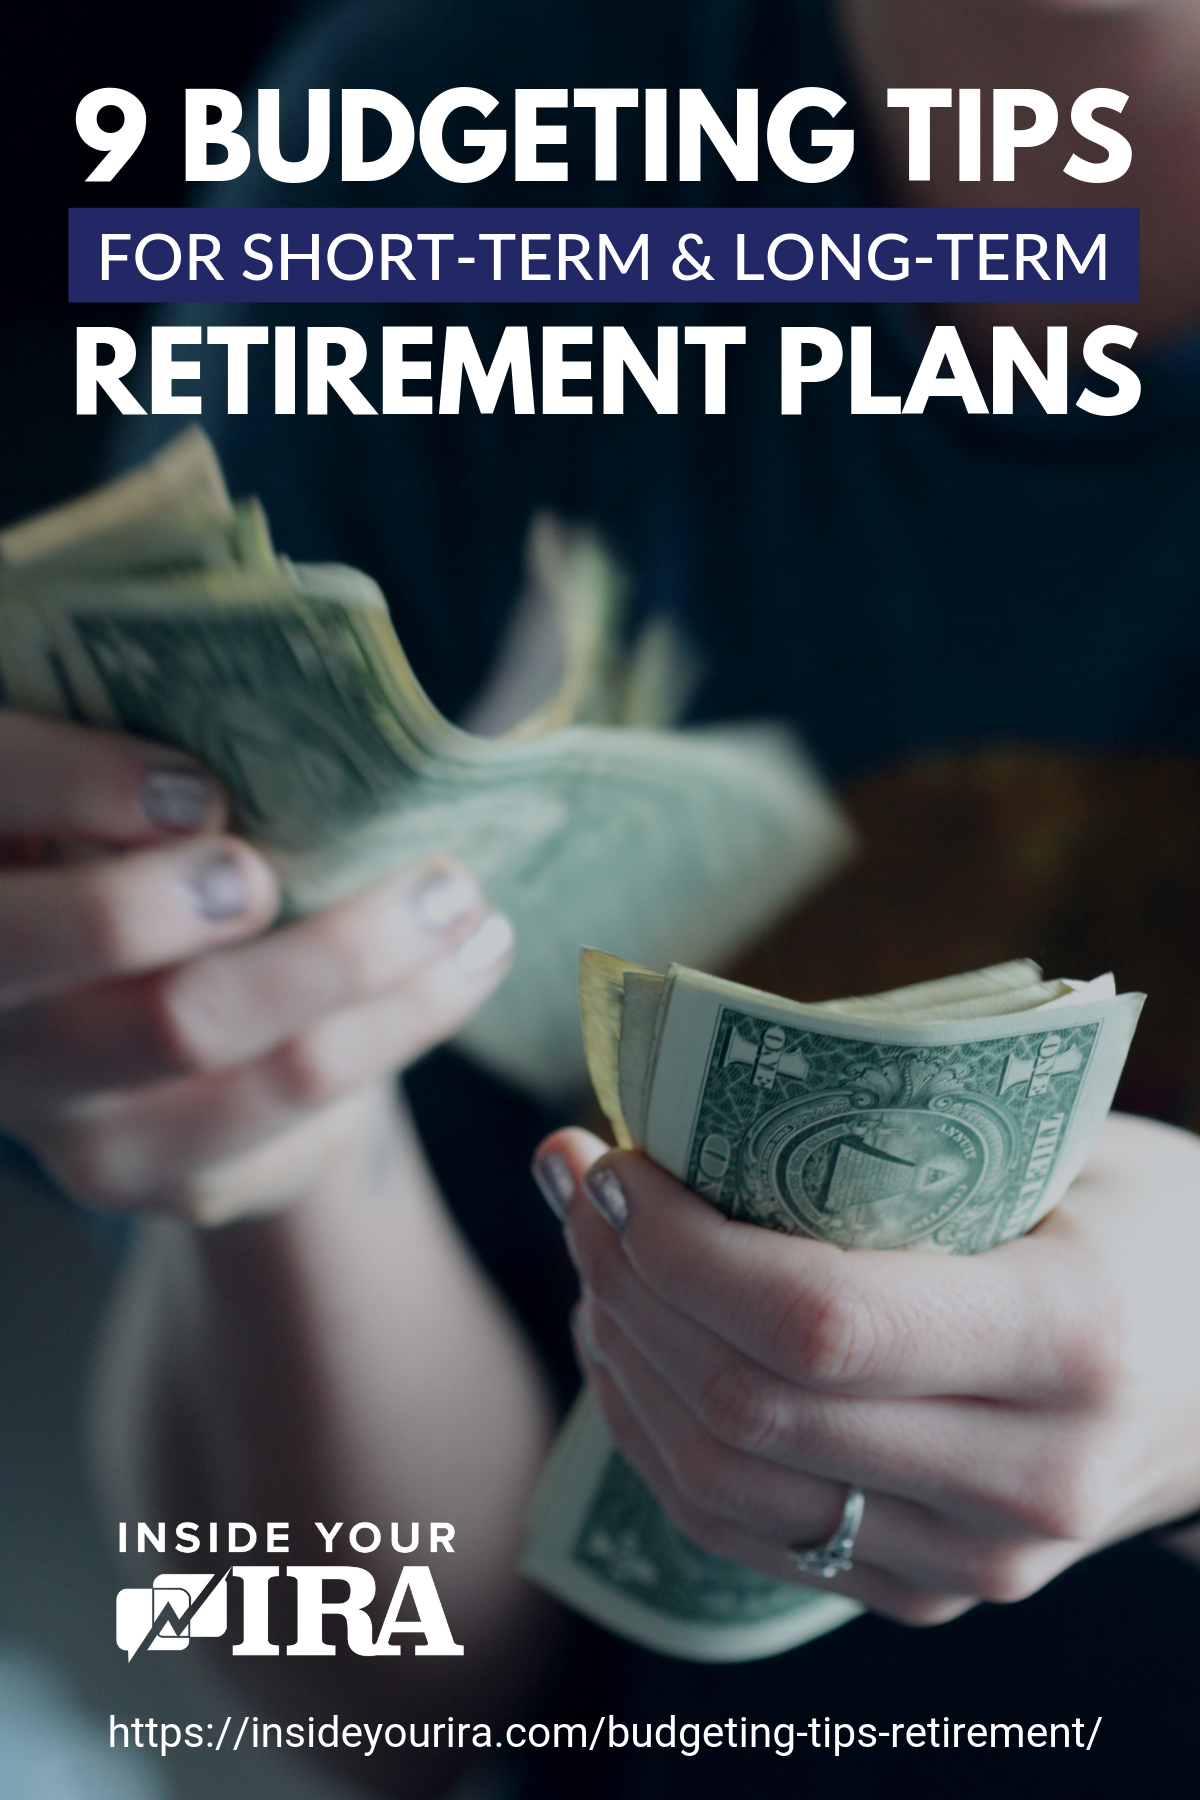 9 Budgeting Tips For Short-Term And Long-Term Retirement Plans | Inside Your IRA https://insideyourira.com/budgeting-tips-retirement/